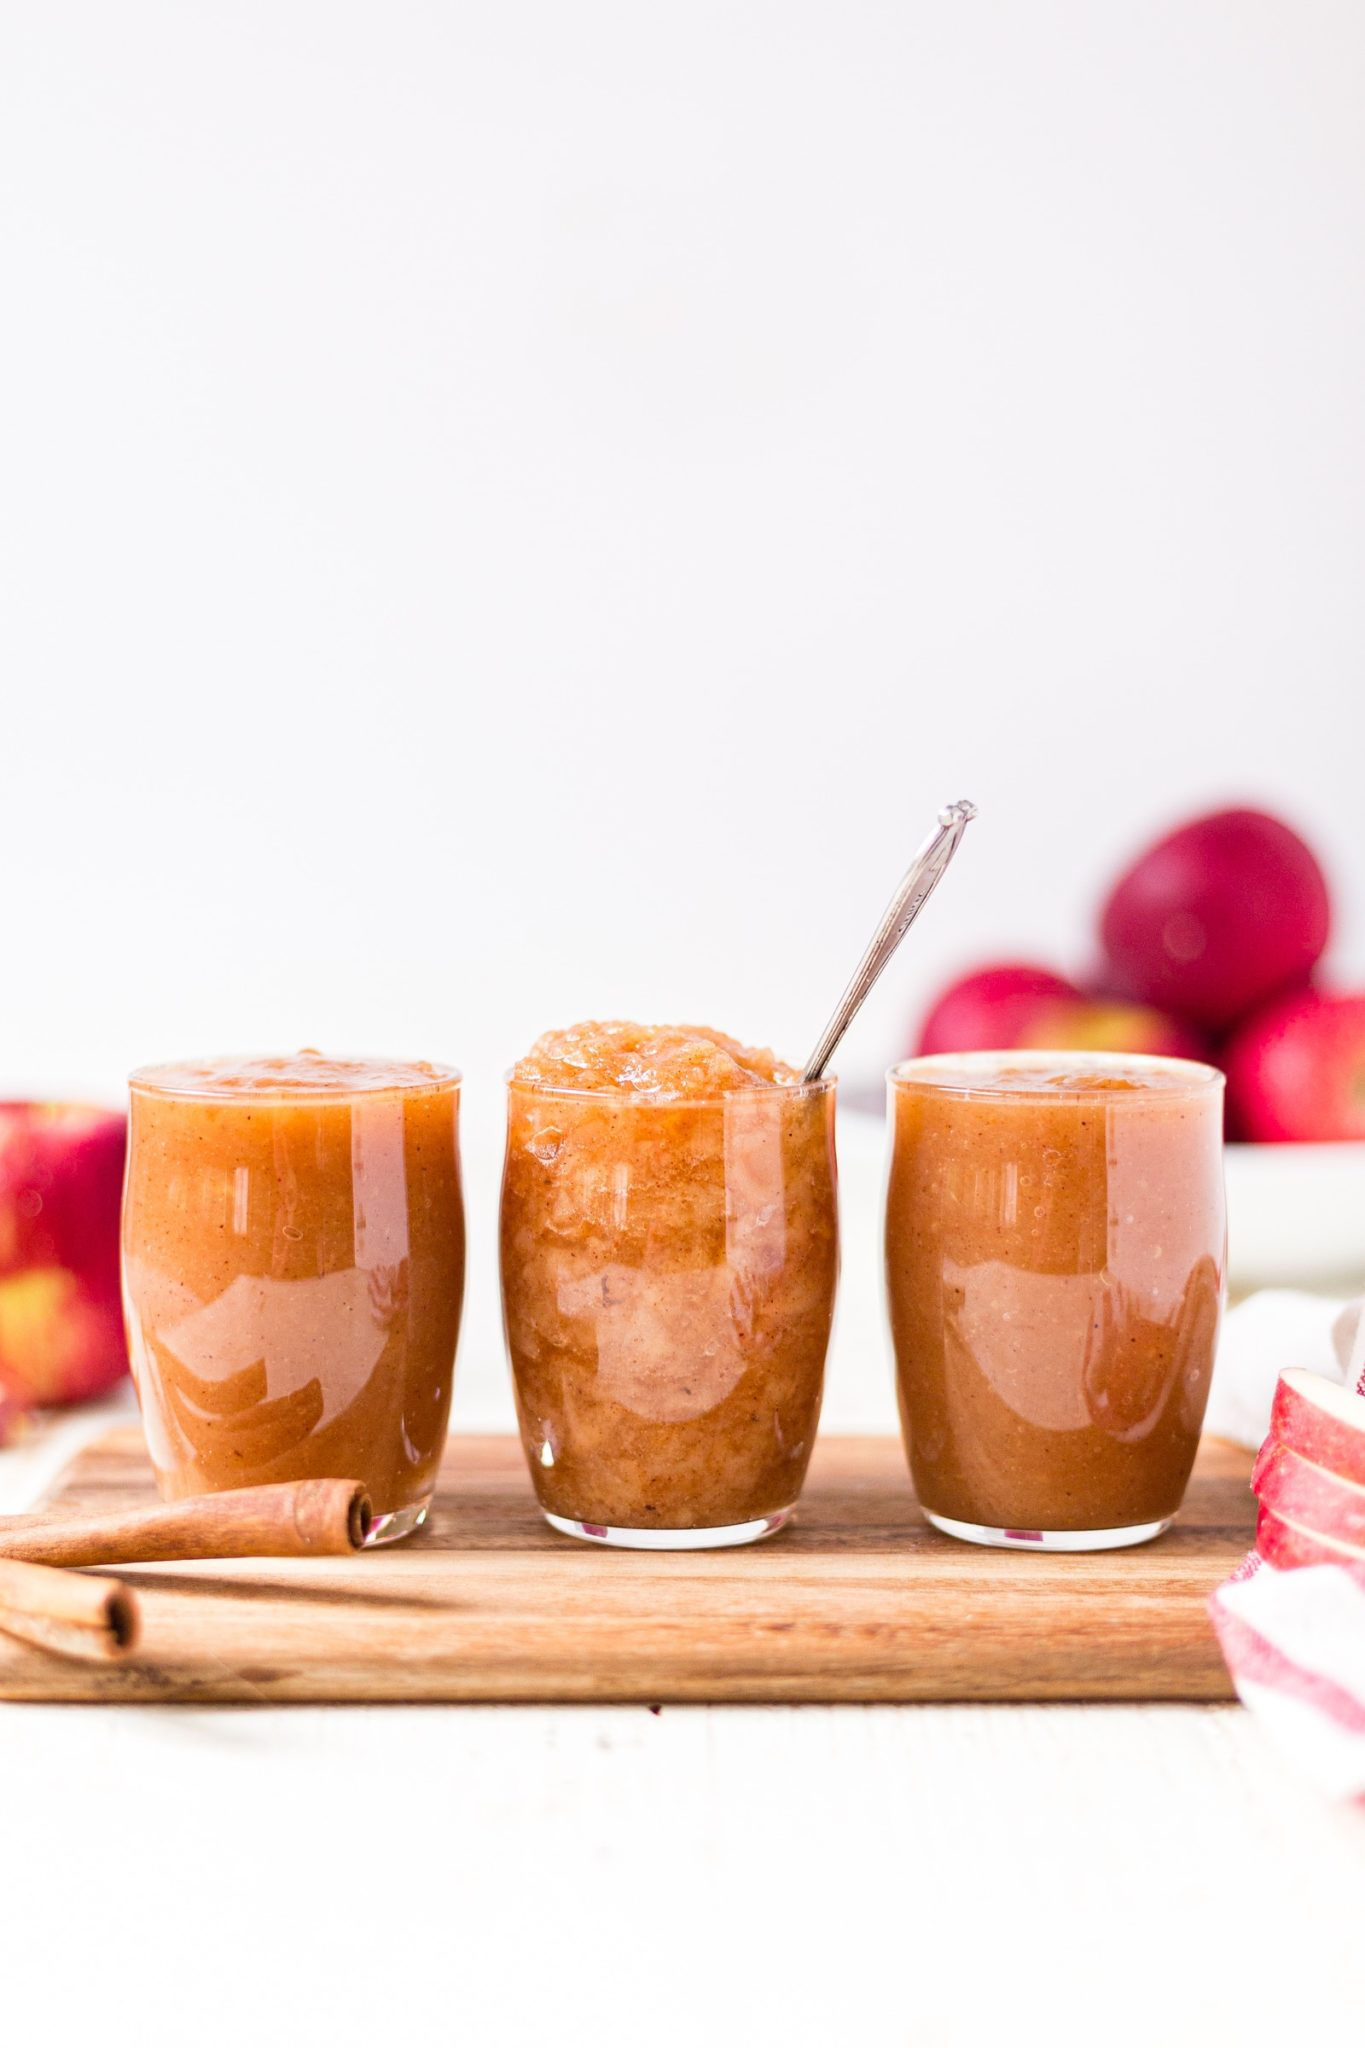 chunky and smooth crockpot applesauce in three jars on a wood cutting board